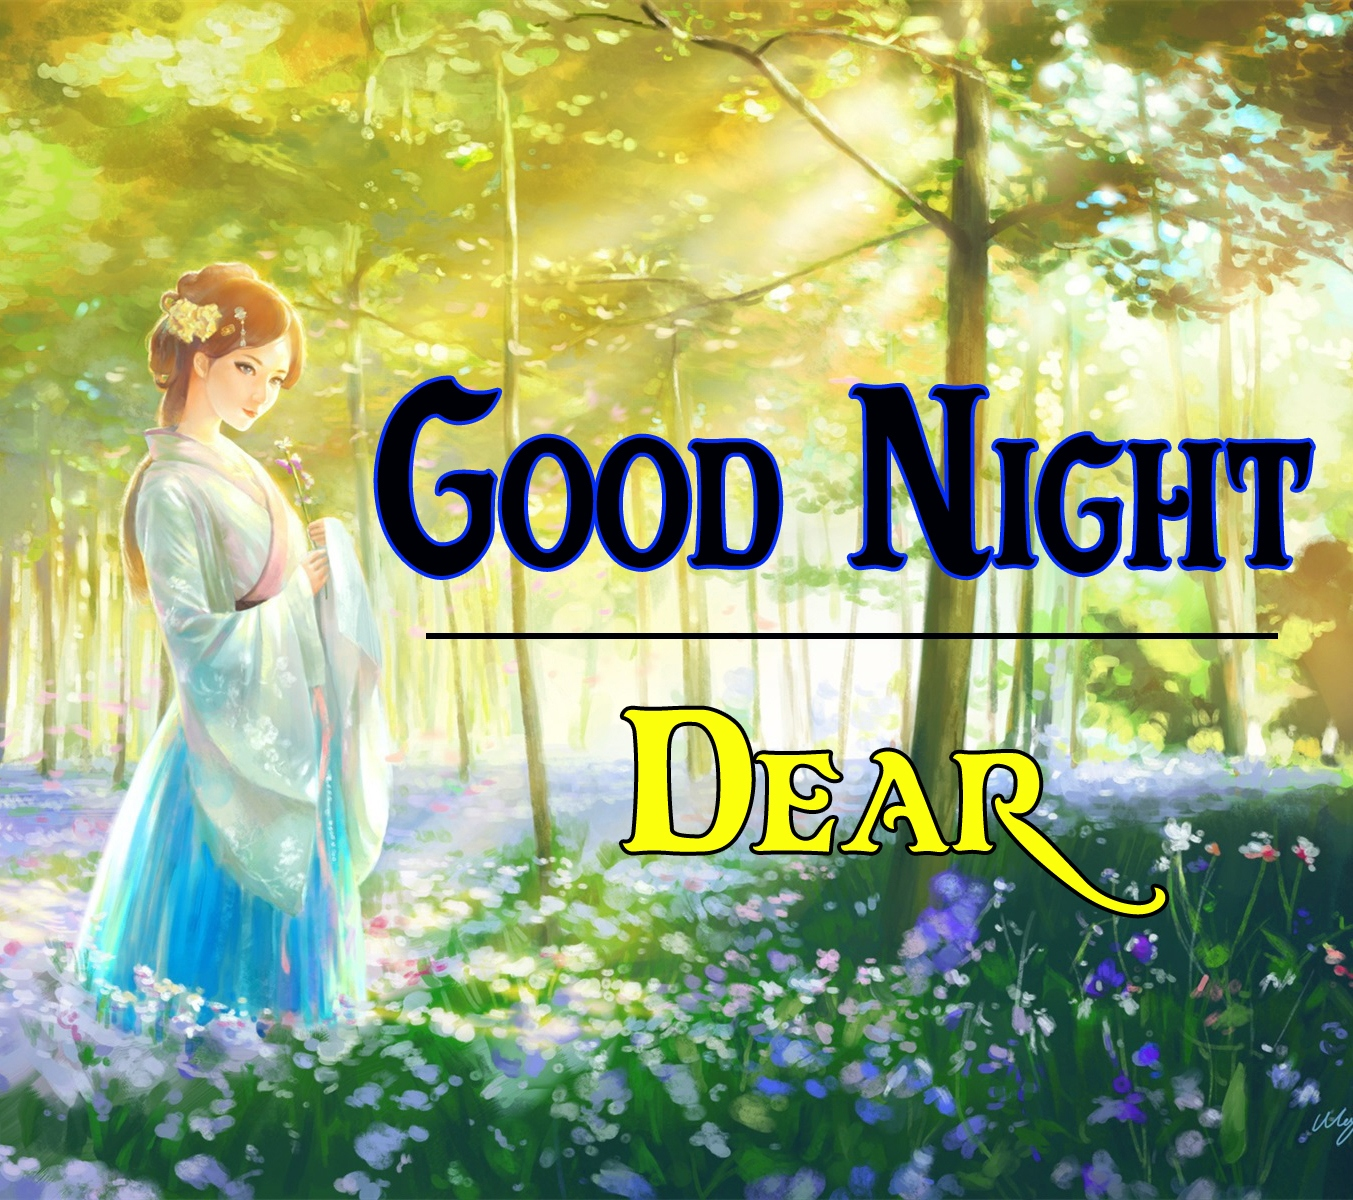 Good night wallpaper hd 87 1